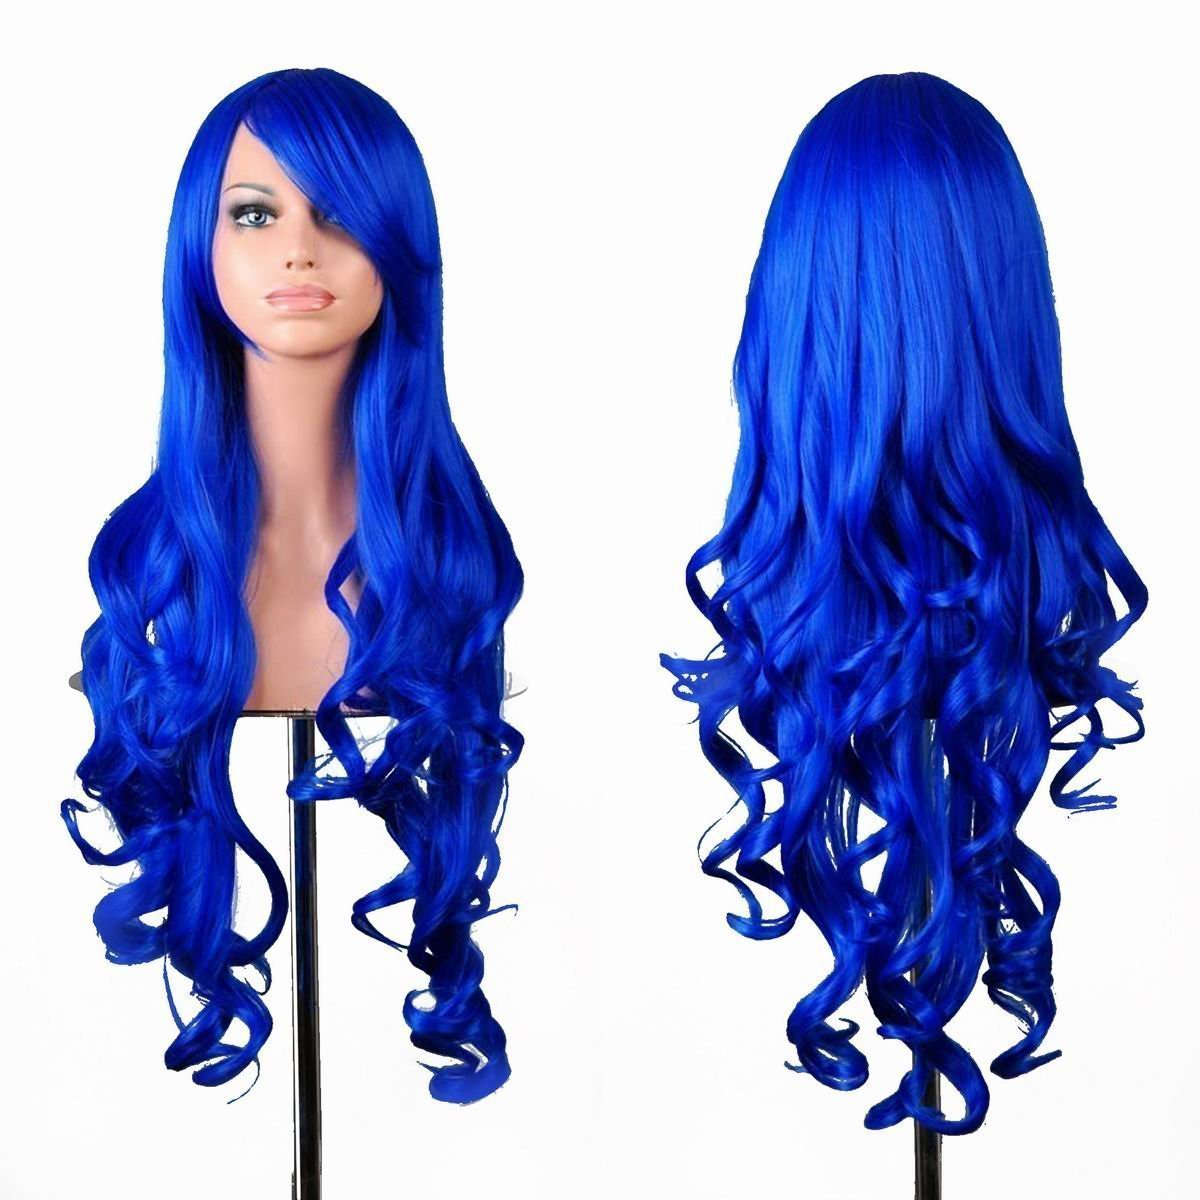 Wigs For Elf Costumes For Halloween Or Cosplay